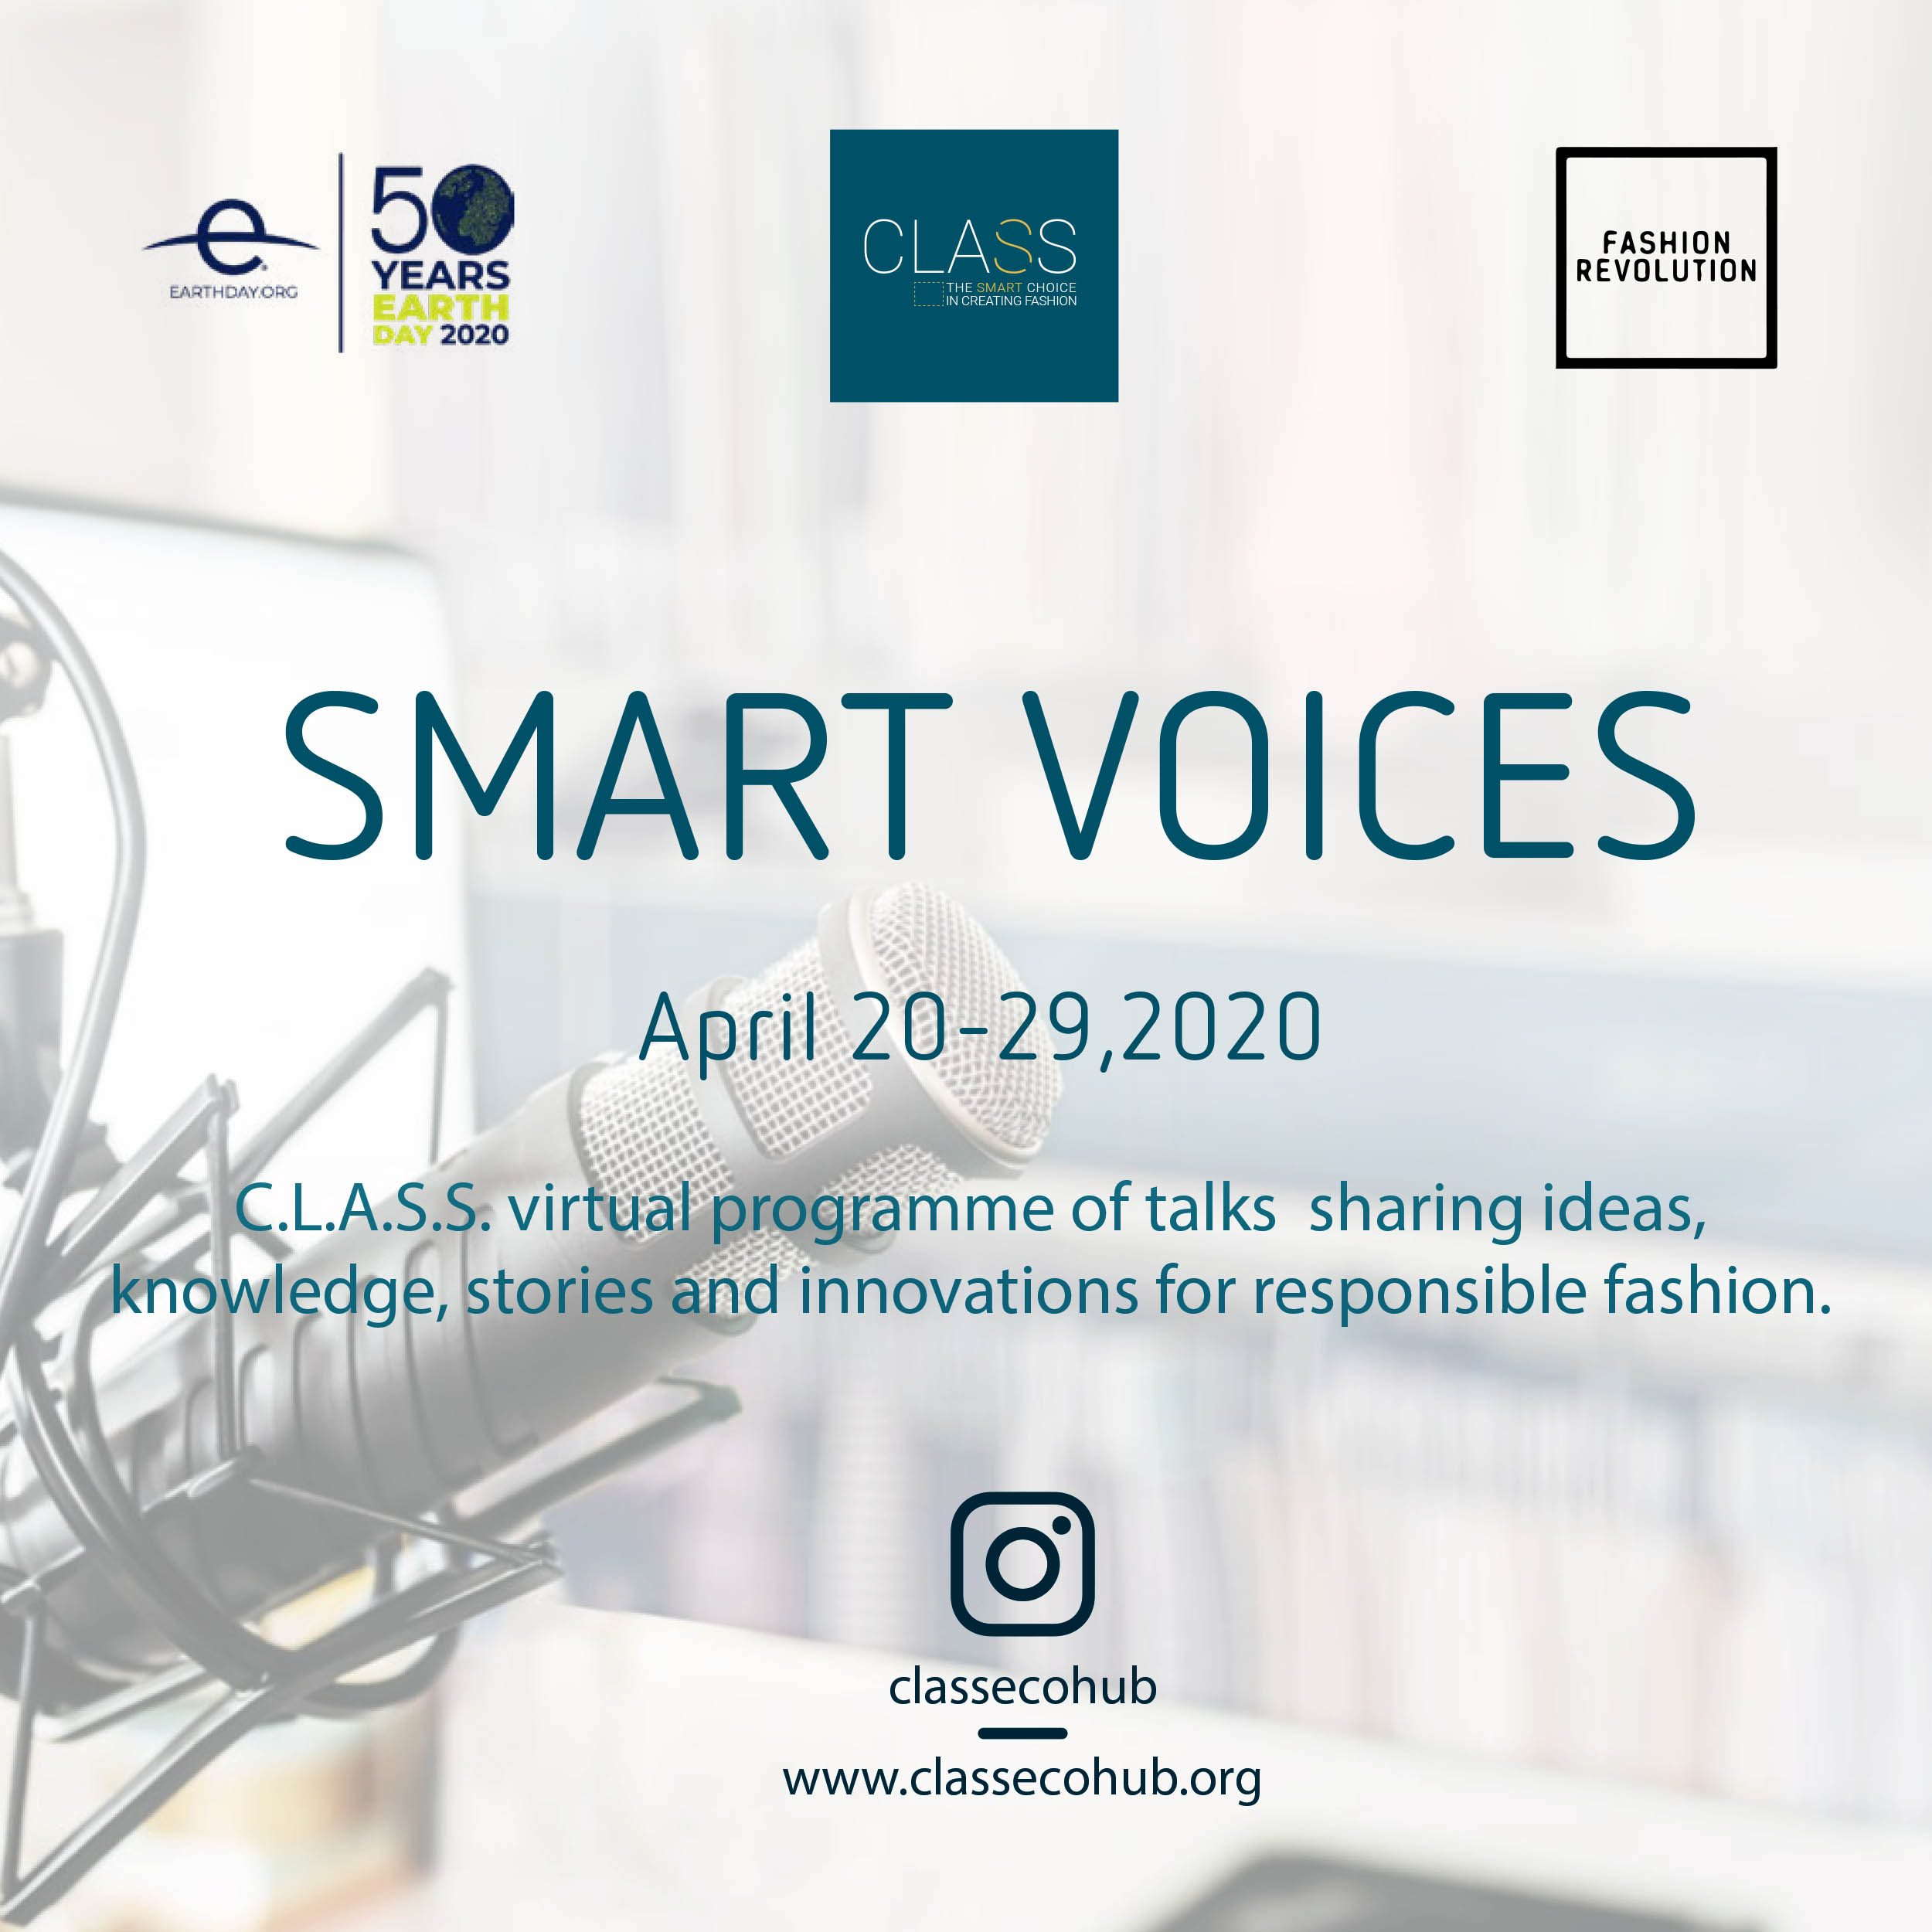 C.L.A.S.S. launches SMART VOICES